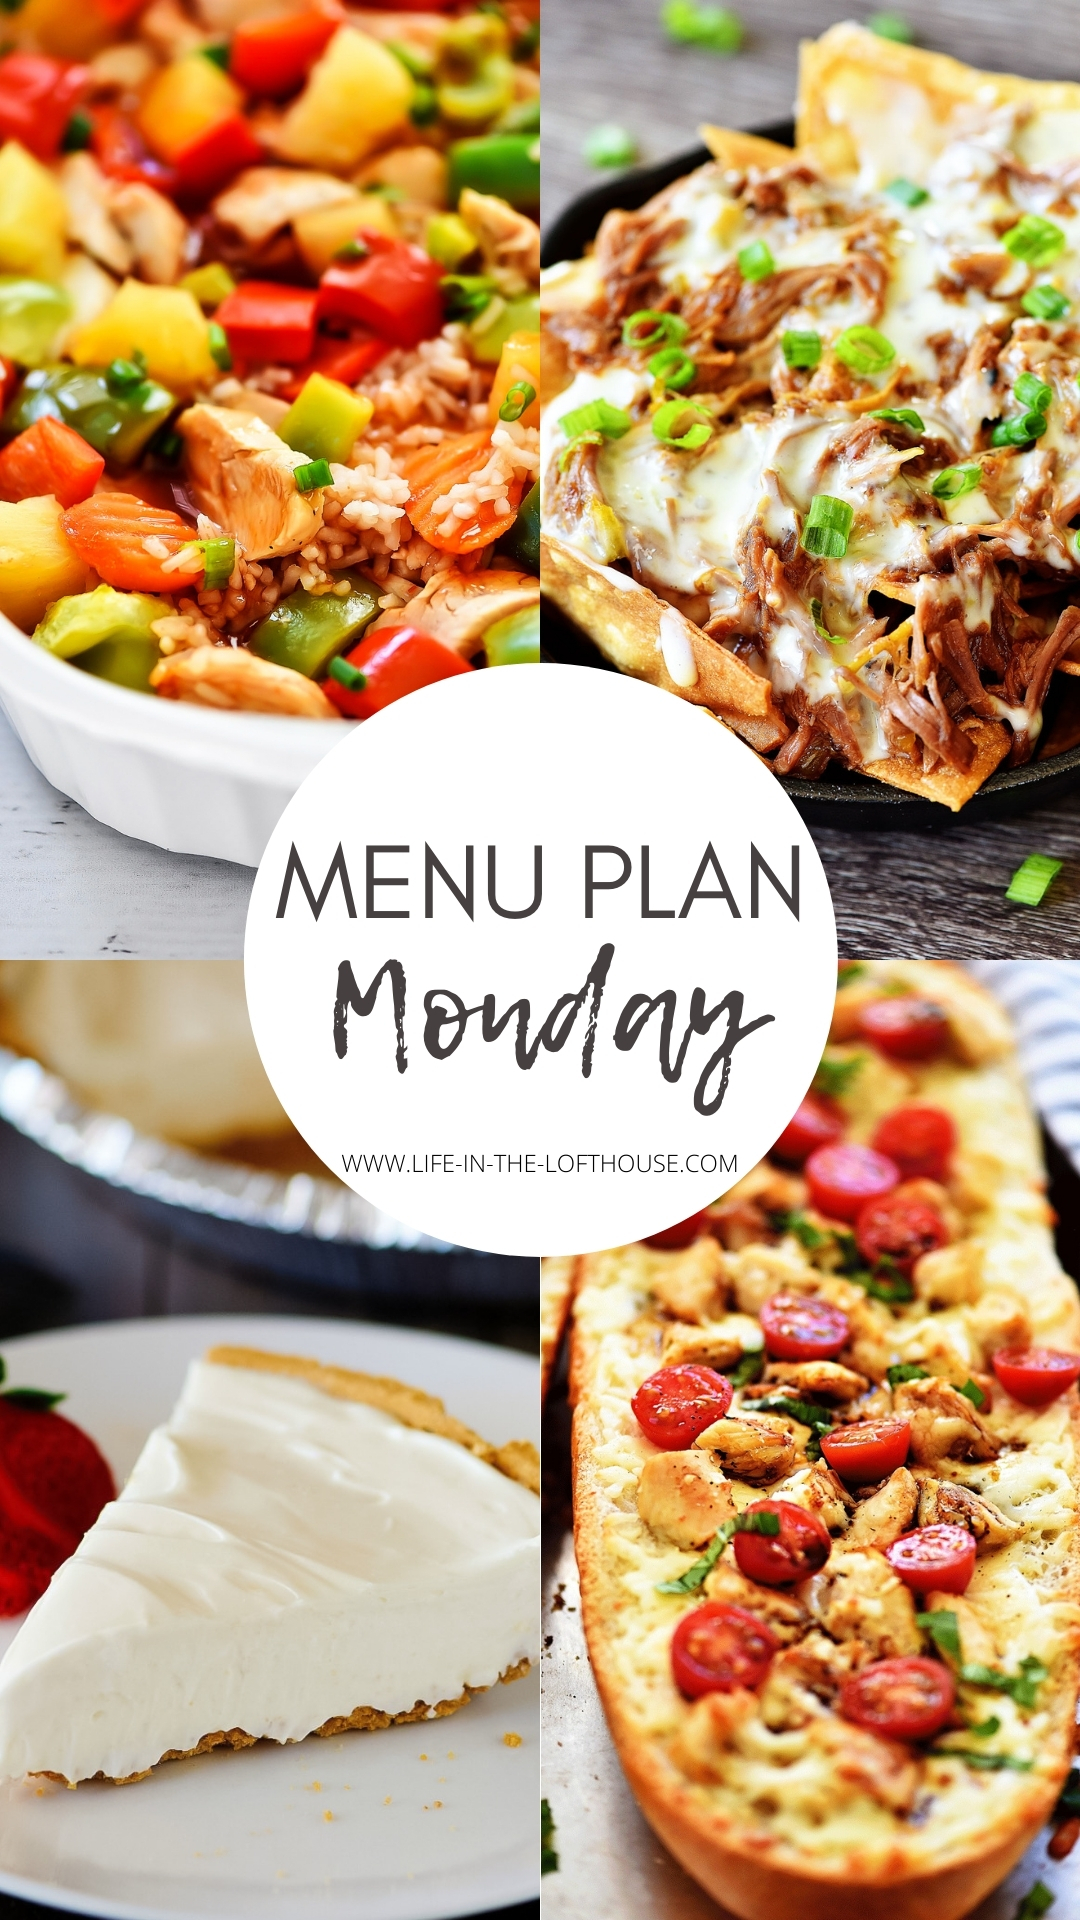 Menu Plan Monday is three steps to getting dinner on the table for your family during the week.